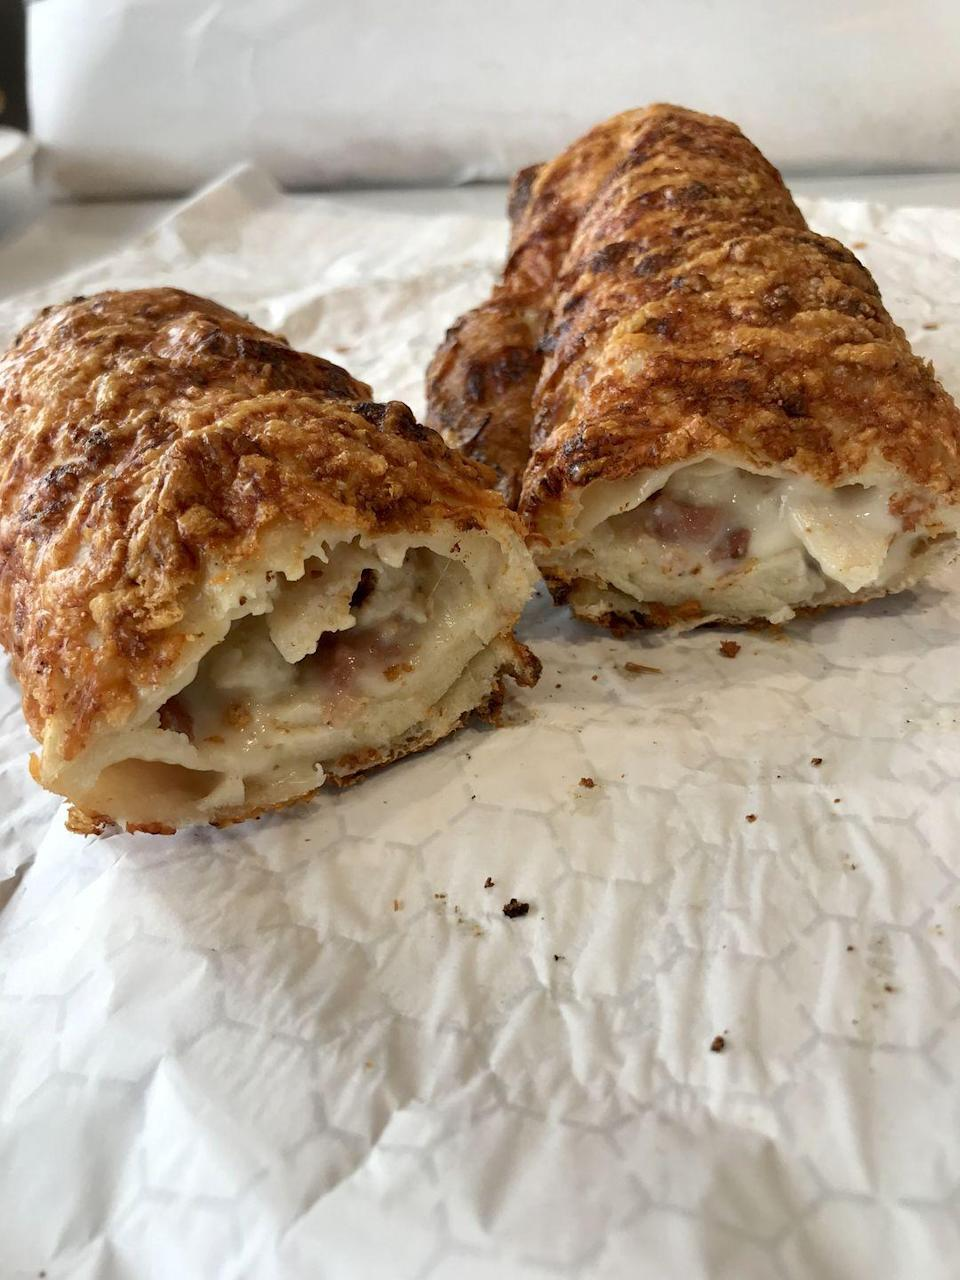 <p>The chicken bake is basically a glorified Hot Pocket—if a Hot Pocket were twice as long and way fluffier. It tastes like a croissant with crispy asiago cheese on top, and I am HERE for it. </p><p>Inside, there's chicken breast, cheese, bacon, and caesar dressing, which is a fairly random but decidedly delicious combo. Come hungry for this one or plan to split it with your Costco buddy, because it's HUGE. </p>